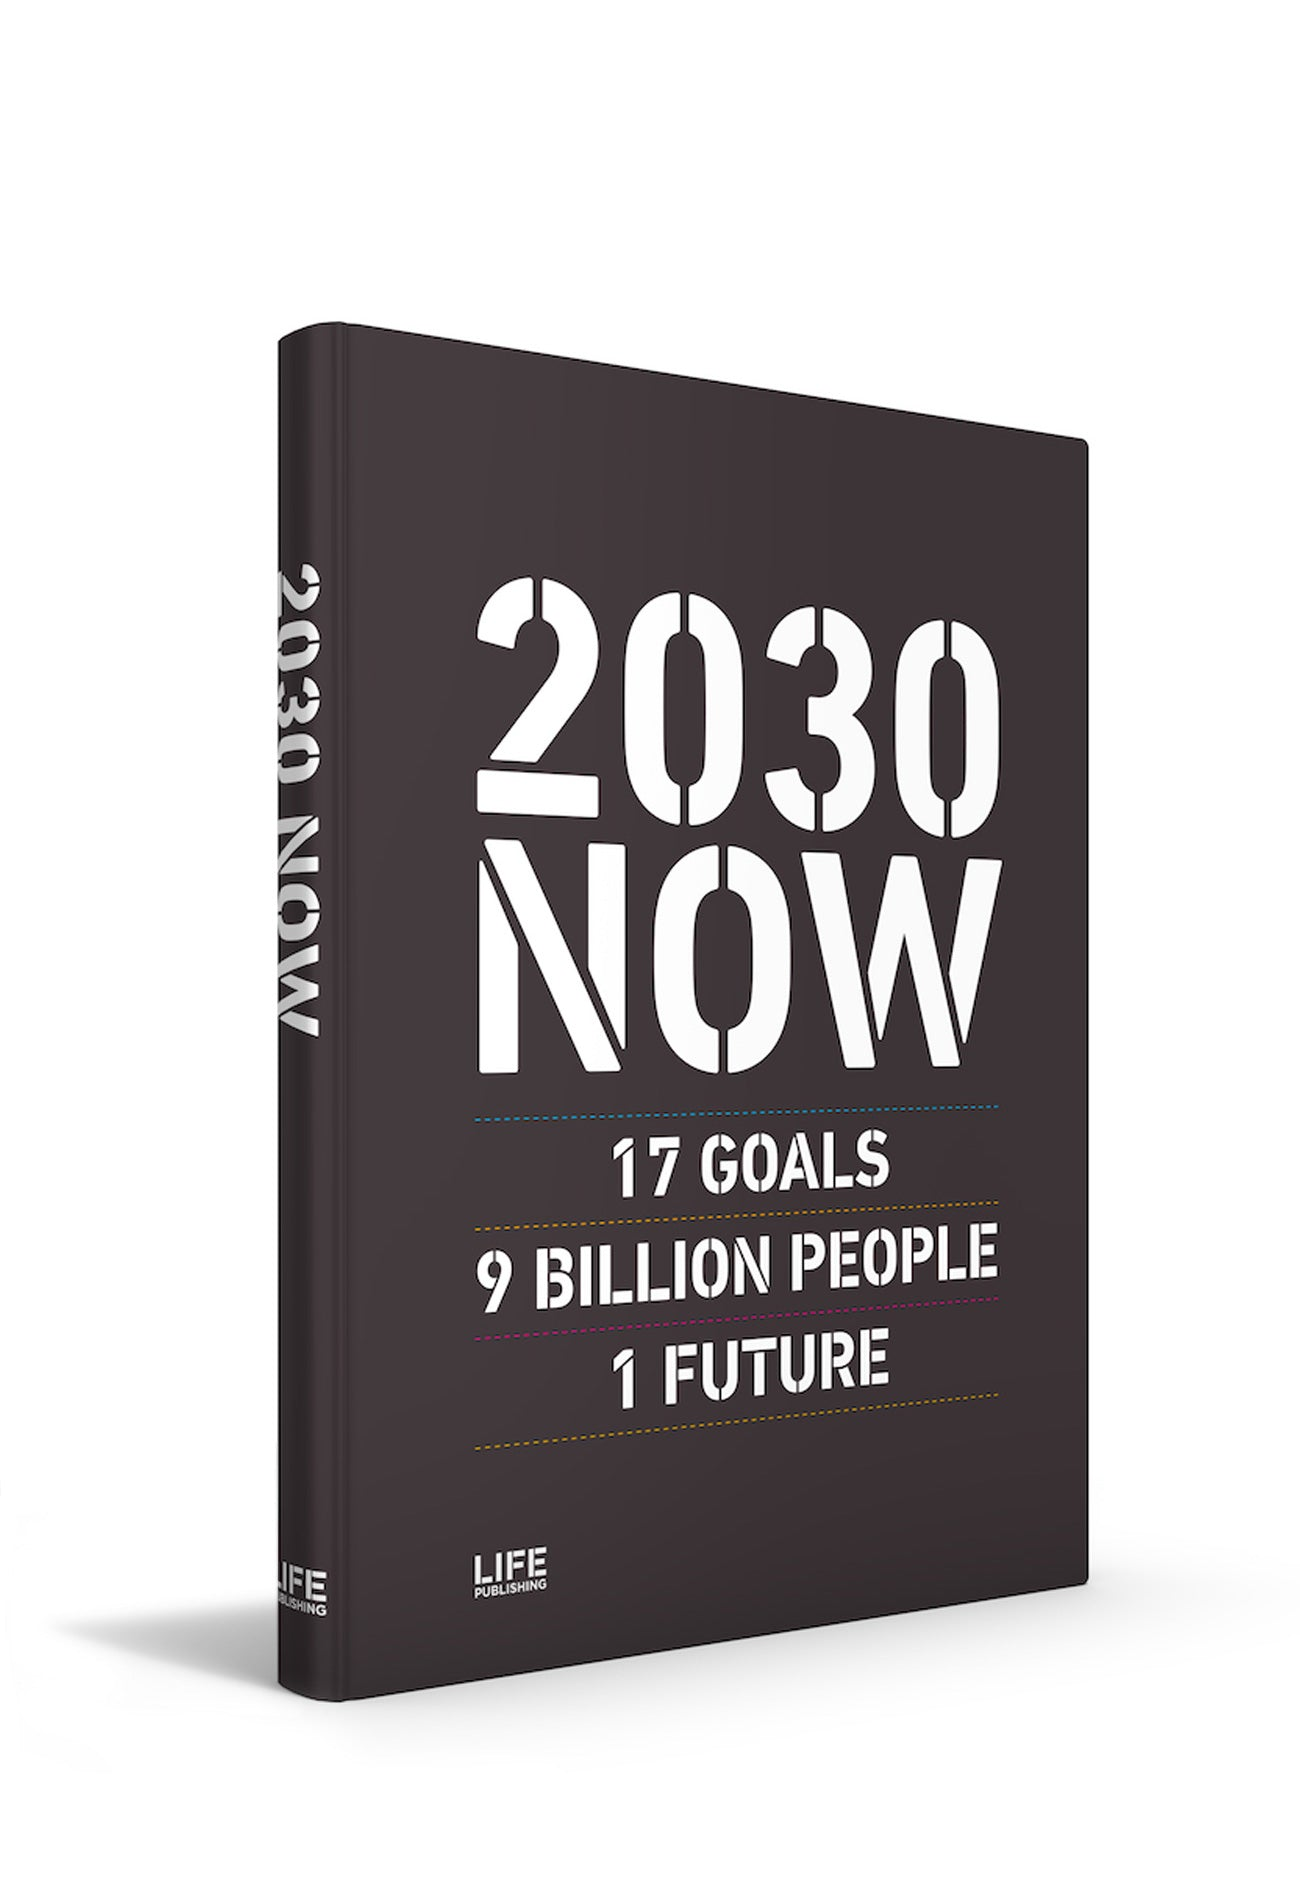 Cover page of the book 2030 Now